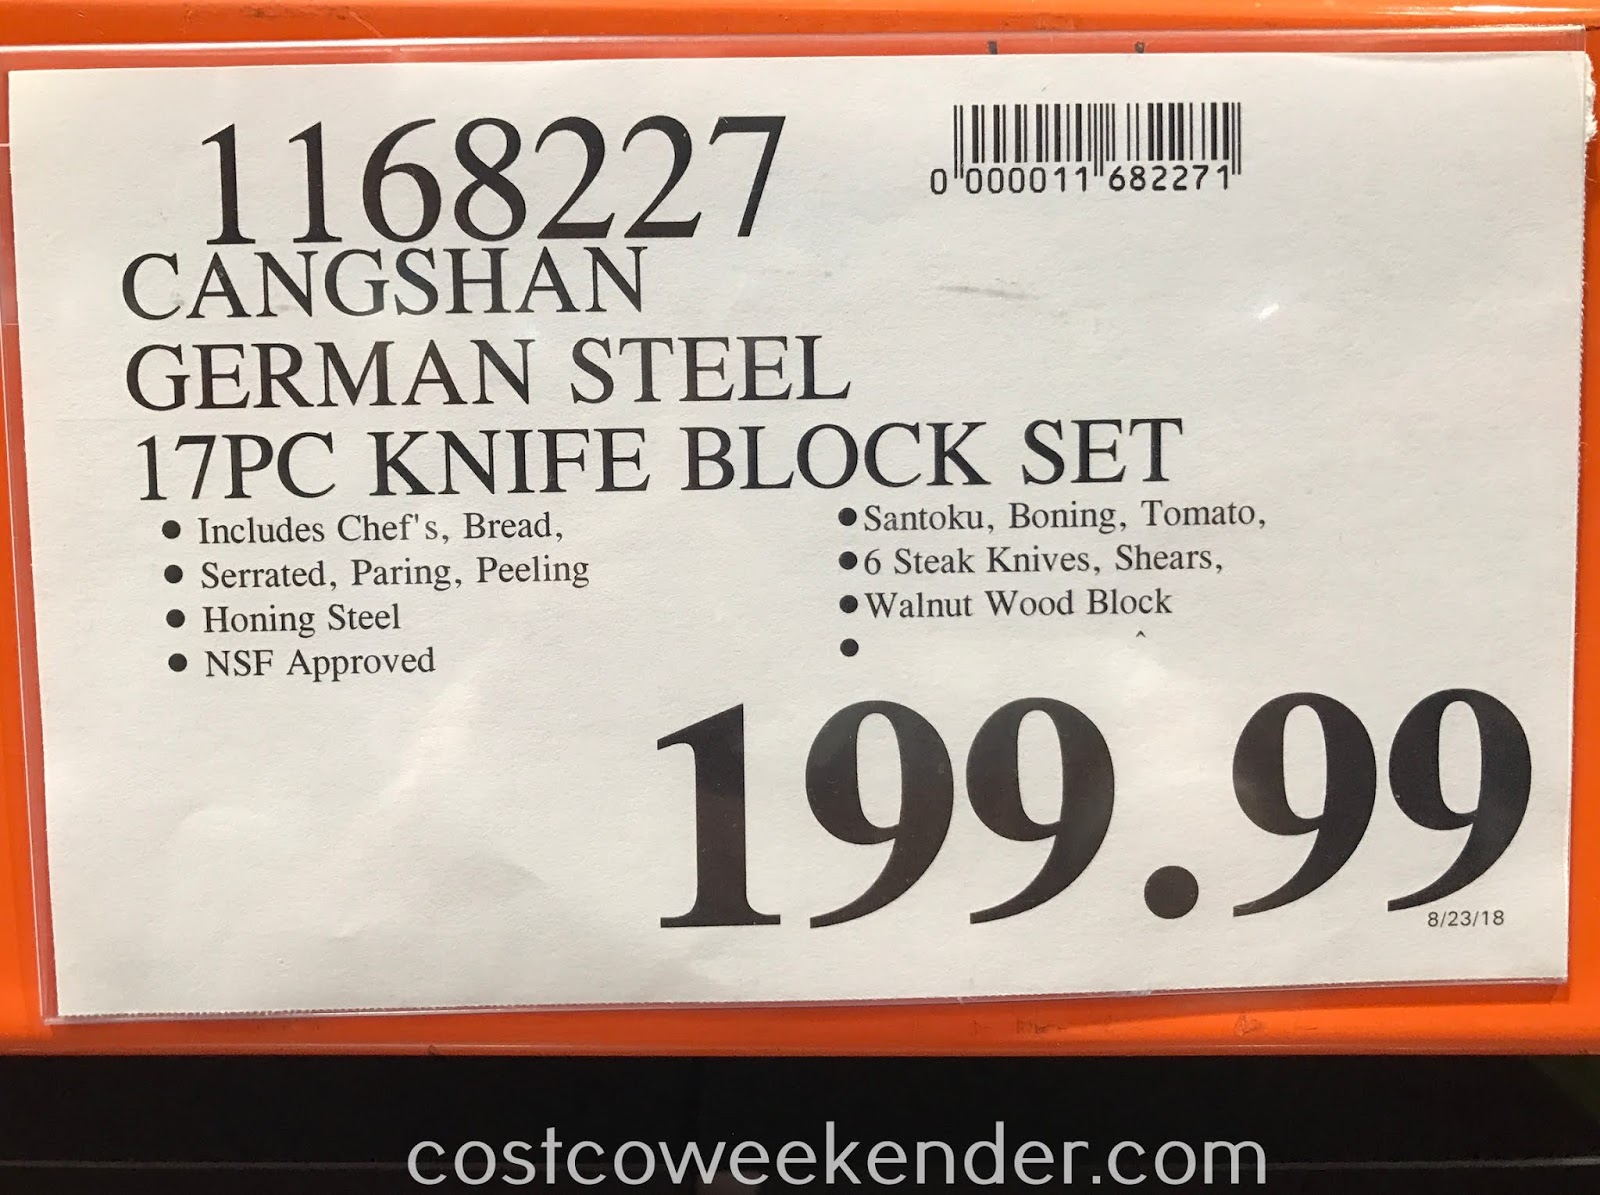 Deal for the Cangshan German Steel 17pc Knife Block Set at Costco